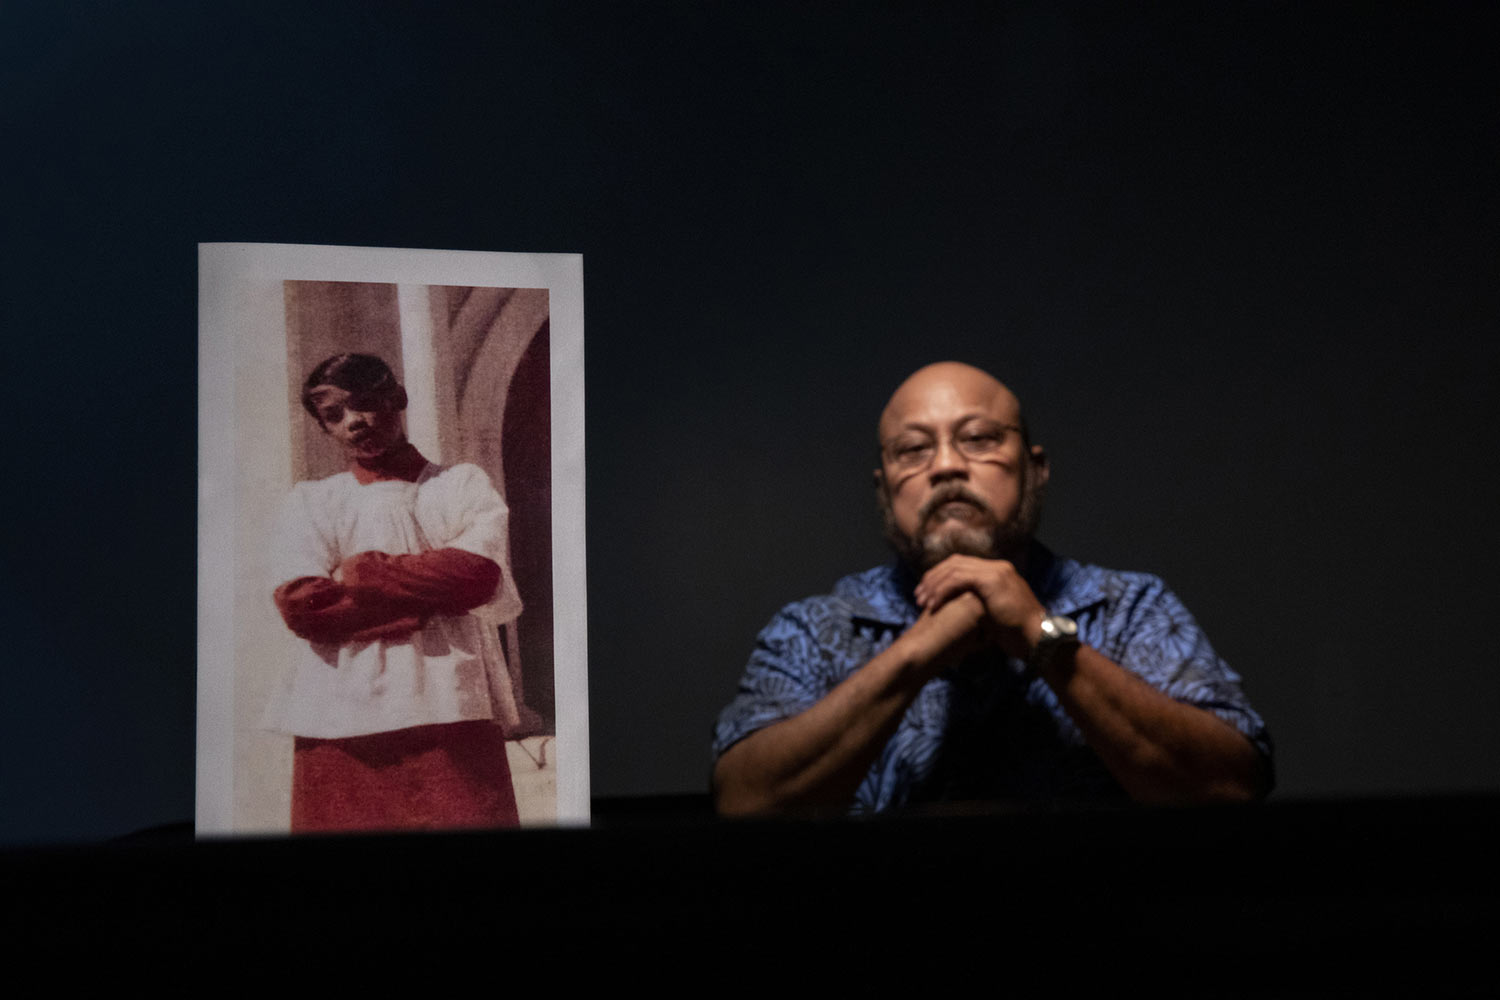 Melvin Duenas, 58, sits beside a photo of himself when he was 11 years old. (AP Photo/David Goldman)